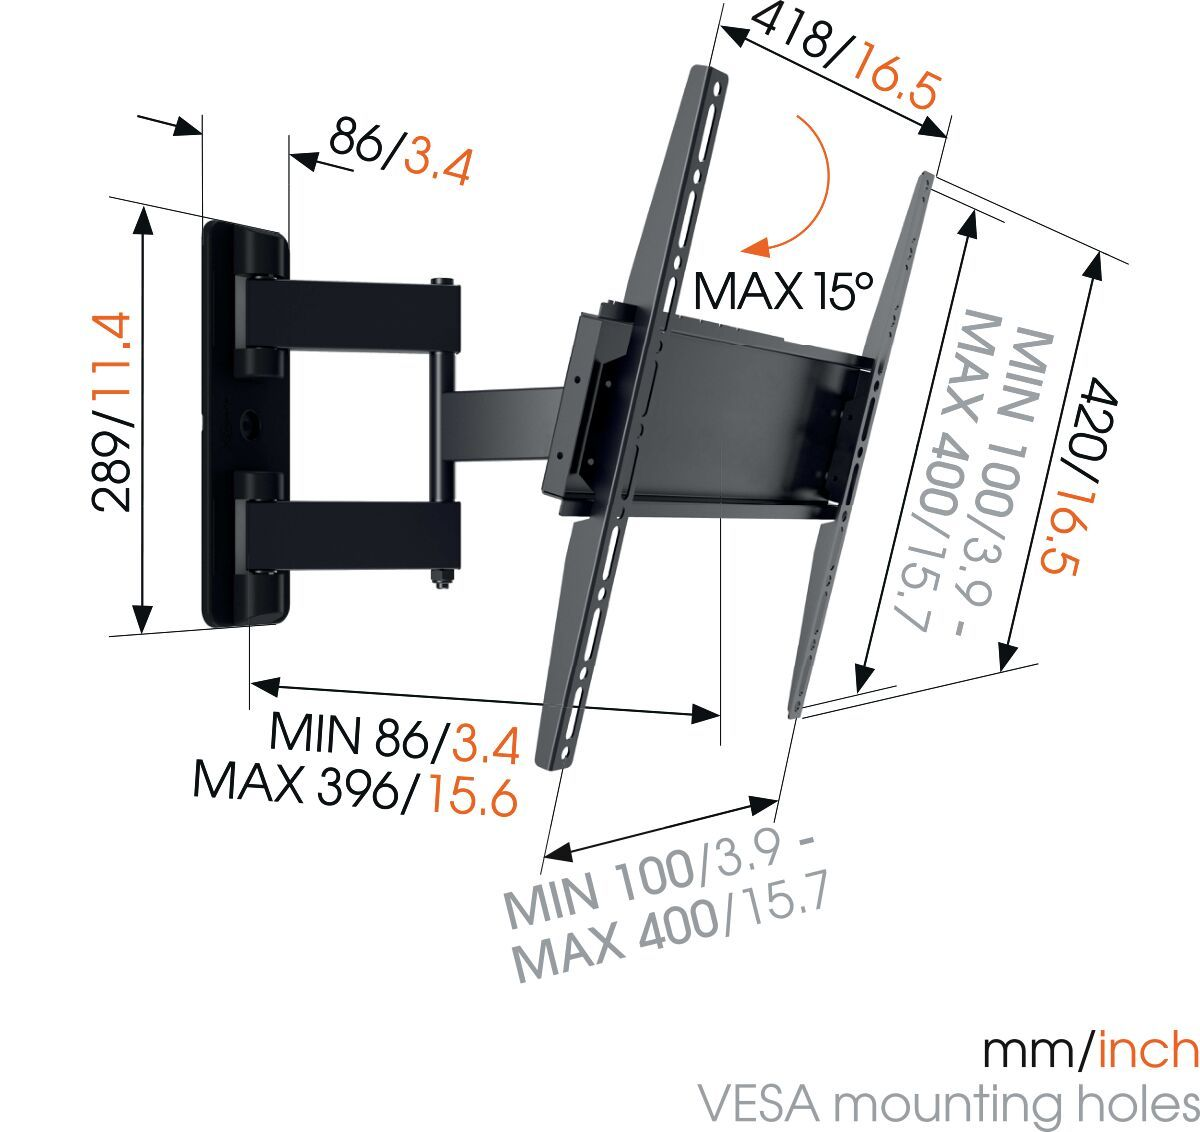 Vogel's MA 3040 (A1) Full-Motion TV Wall Mount - Suitable for 32 up to 55 inch TVs - Full motion (up to 180°) - Tilt up to 10° - Dimensions